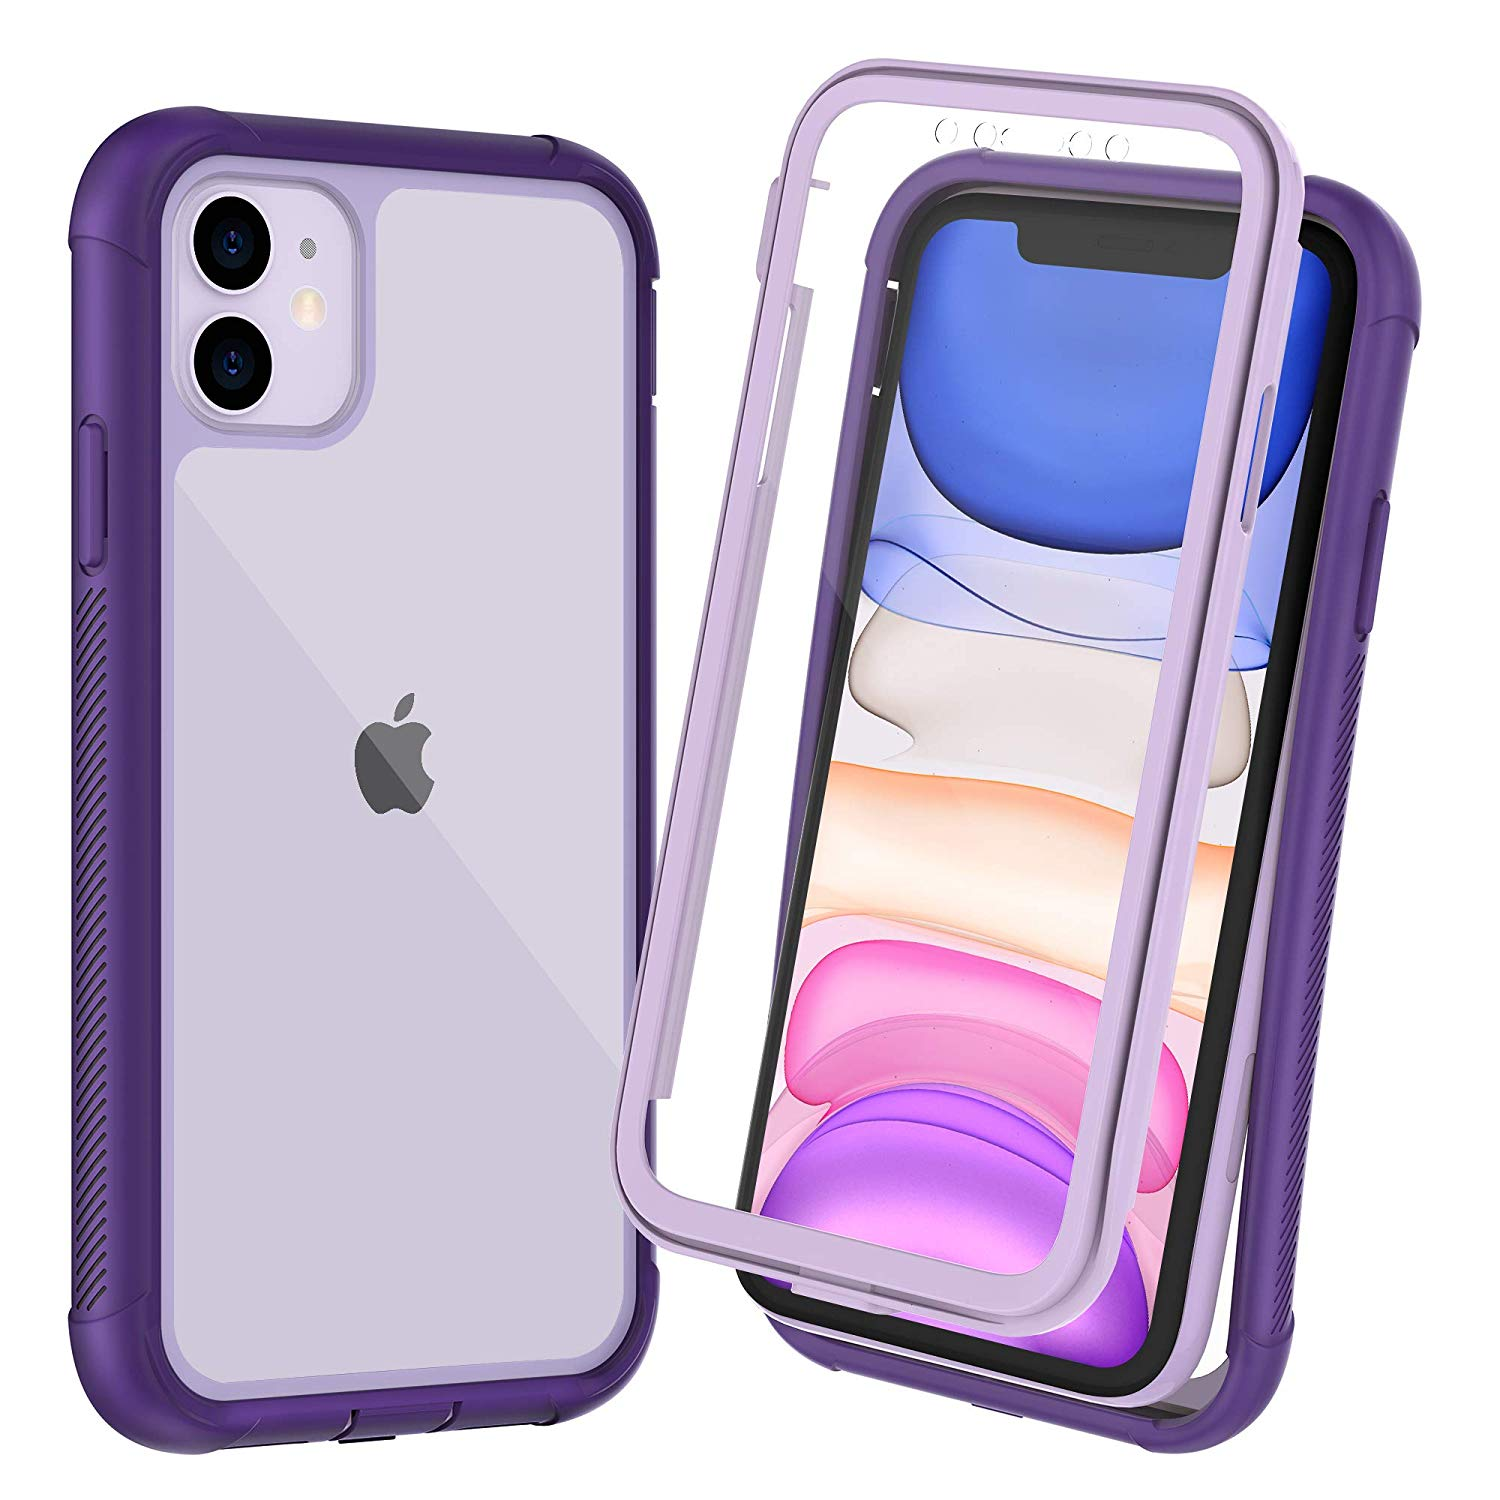 OTBBA iPhone 11 Case, Full-Body with Built-in Screen Protector Heavy Drop Protection Shock Absorption Cover Case Designed for iPhone 11 - 6.1 inch